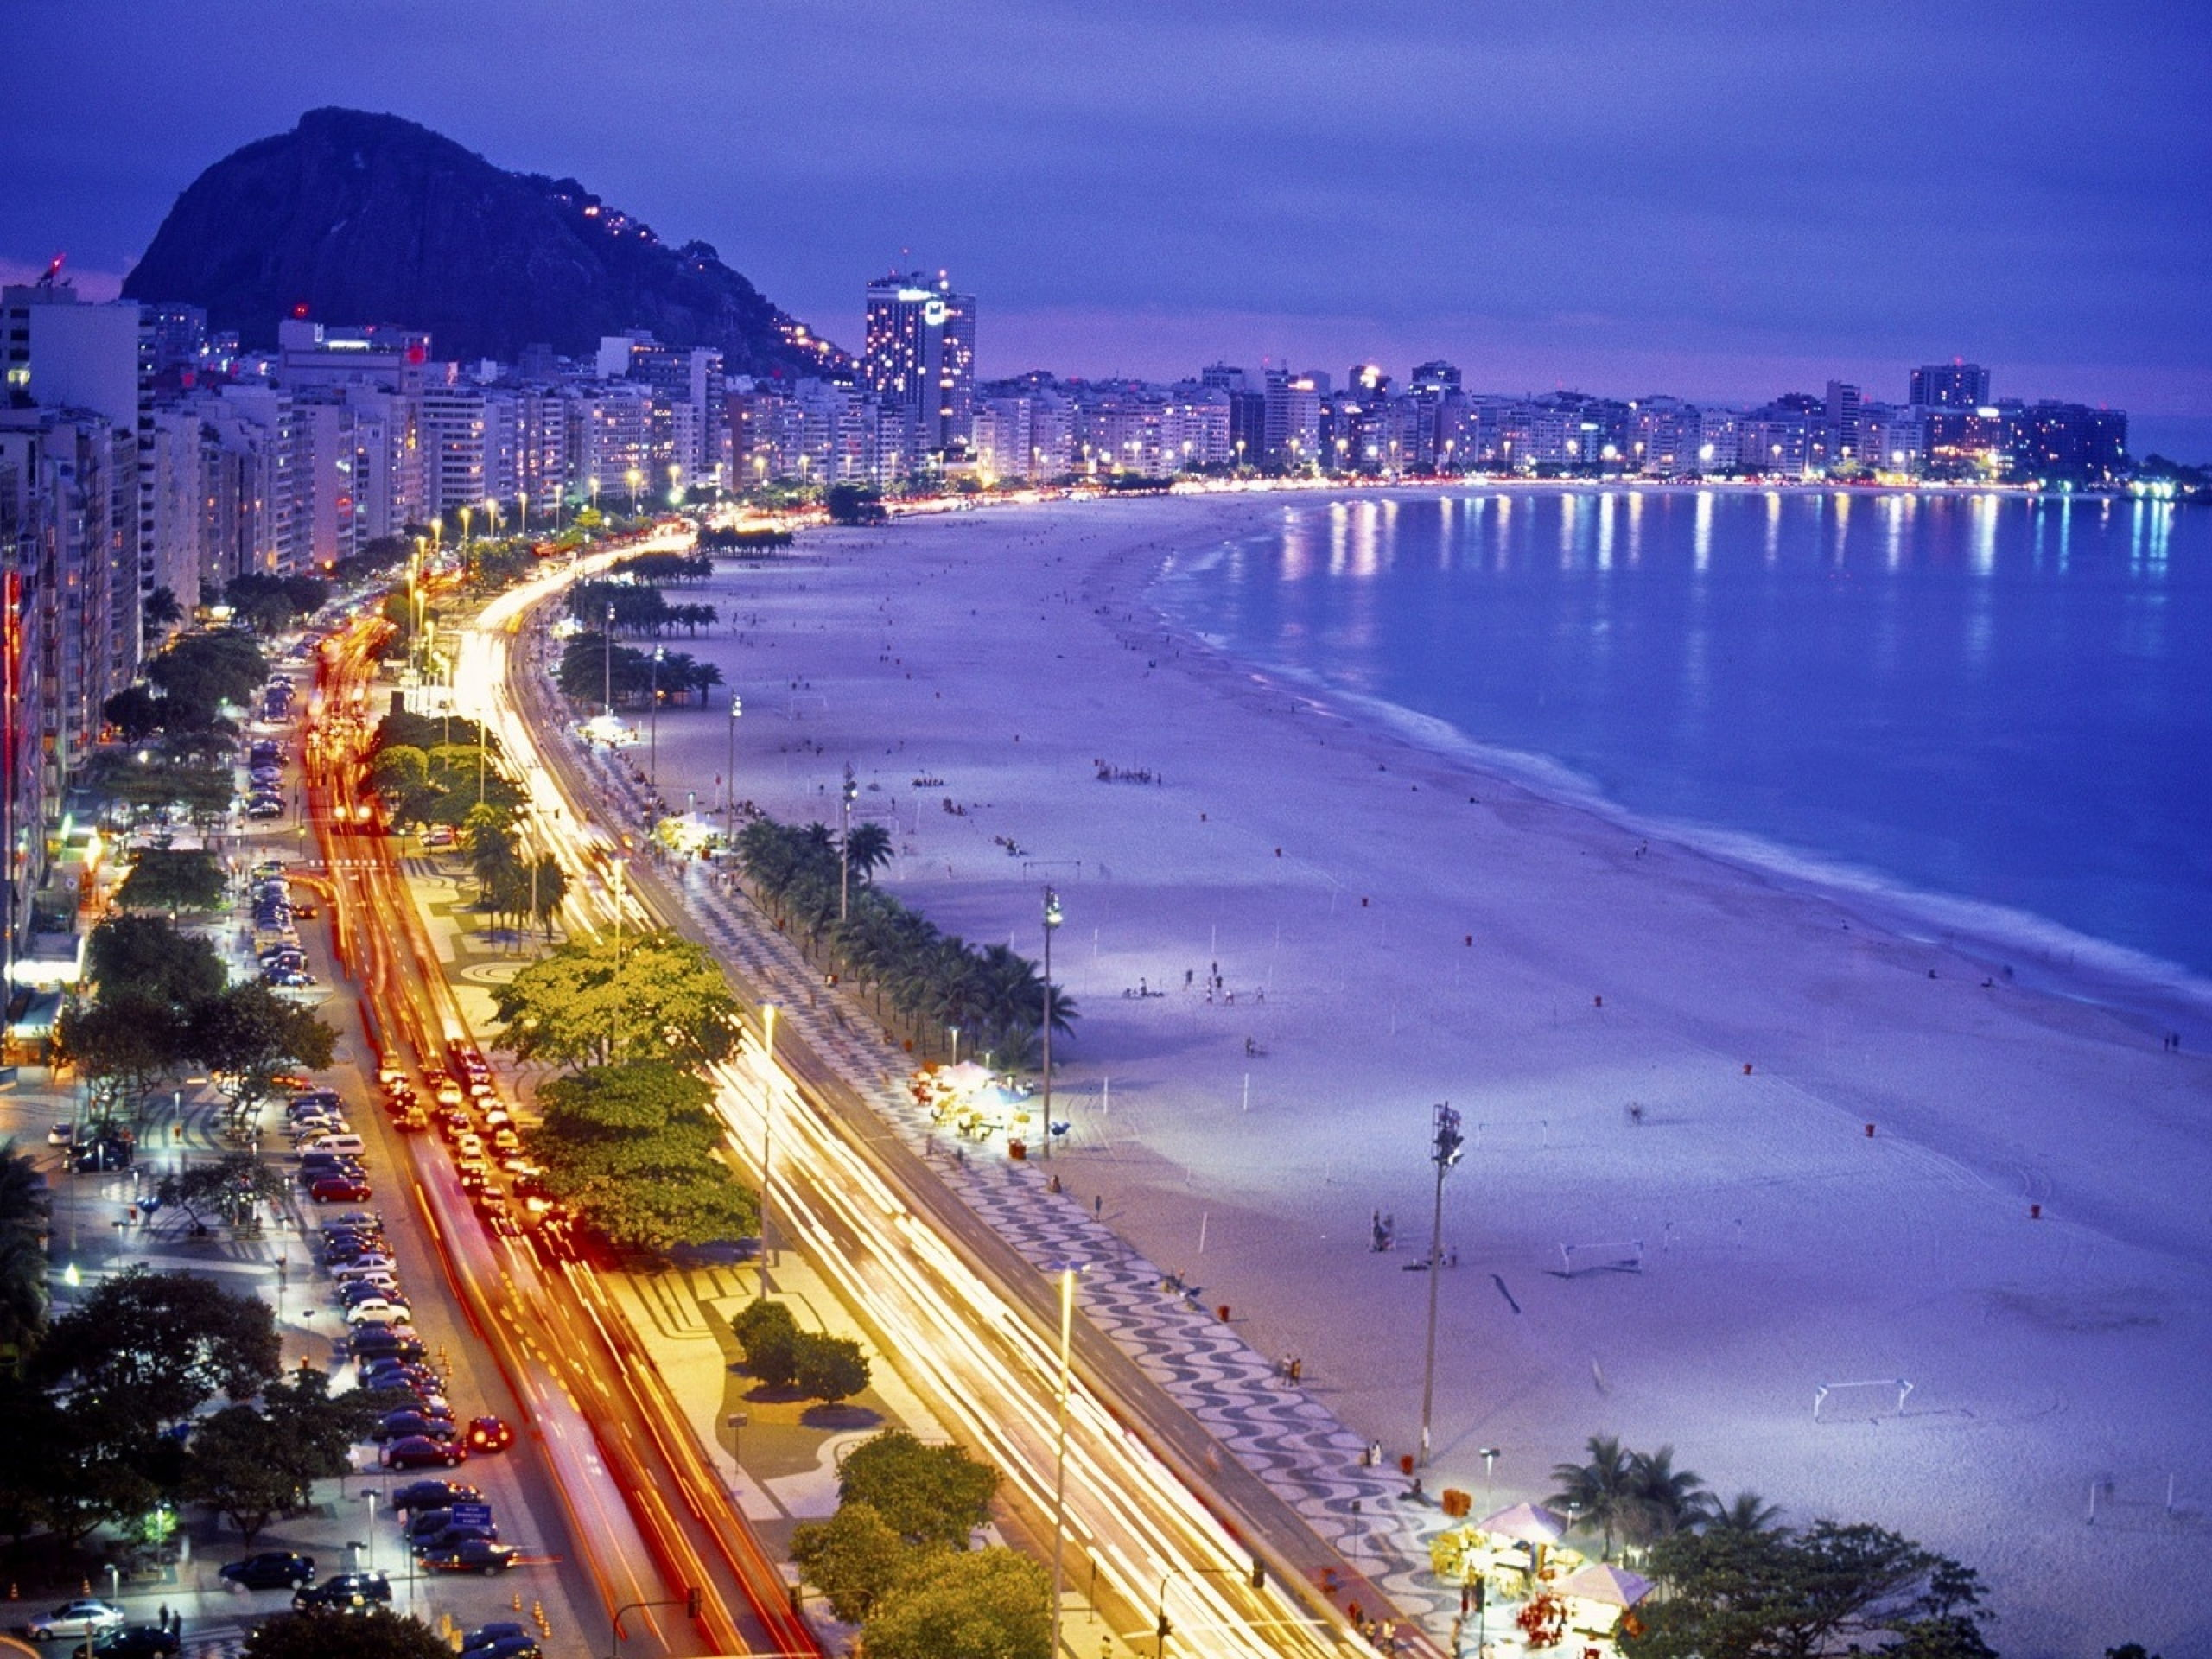 Amazing Place Rio De Janeiro Brazil Wallpaper was added by Martin at